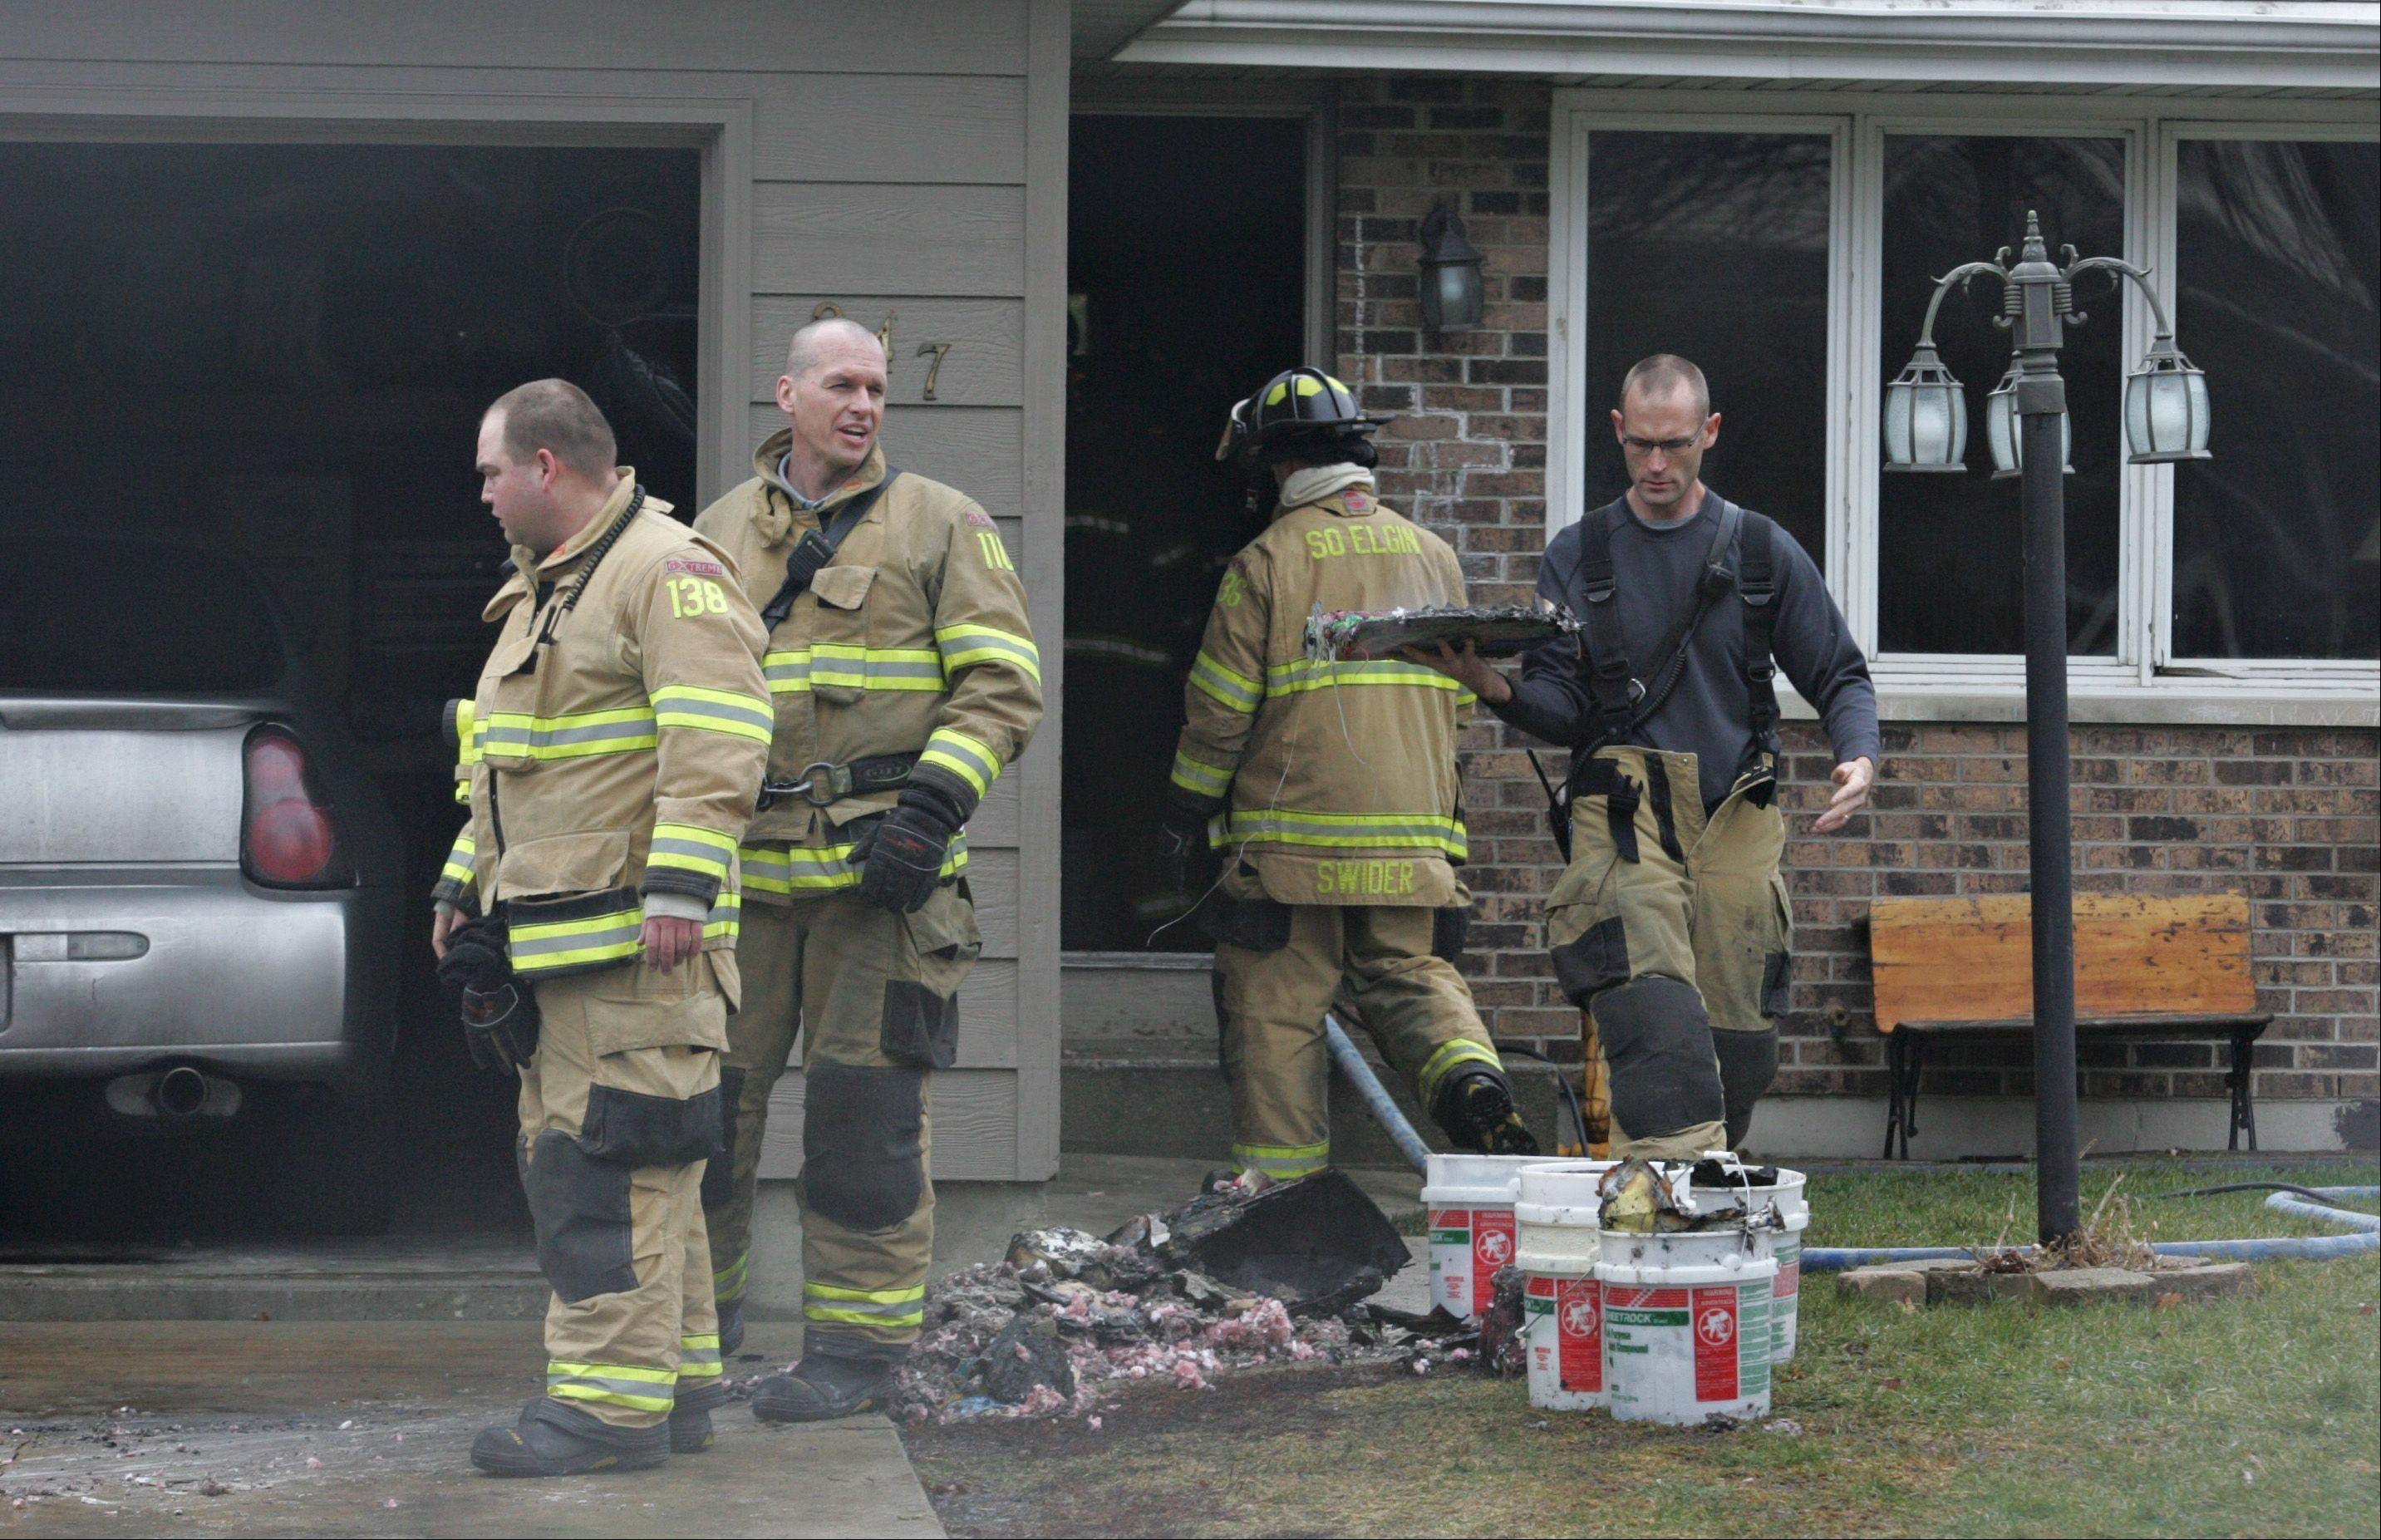 South Elgin firefighters remove some of the burned contents Monday from a home on the 900 block of Kane Street in South Elgin.